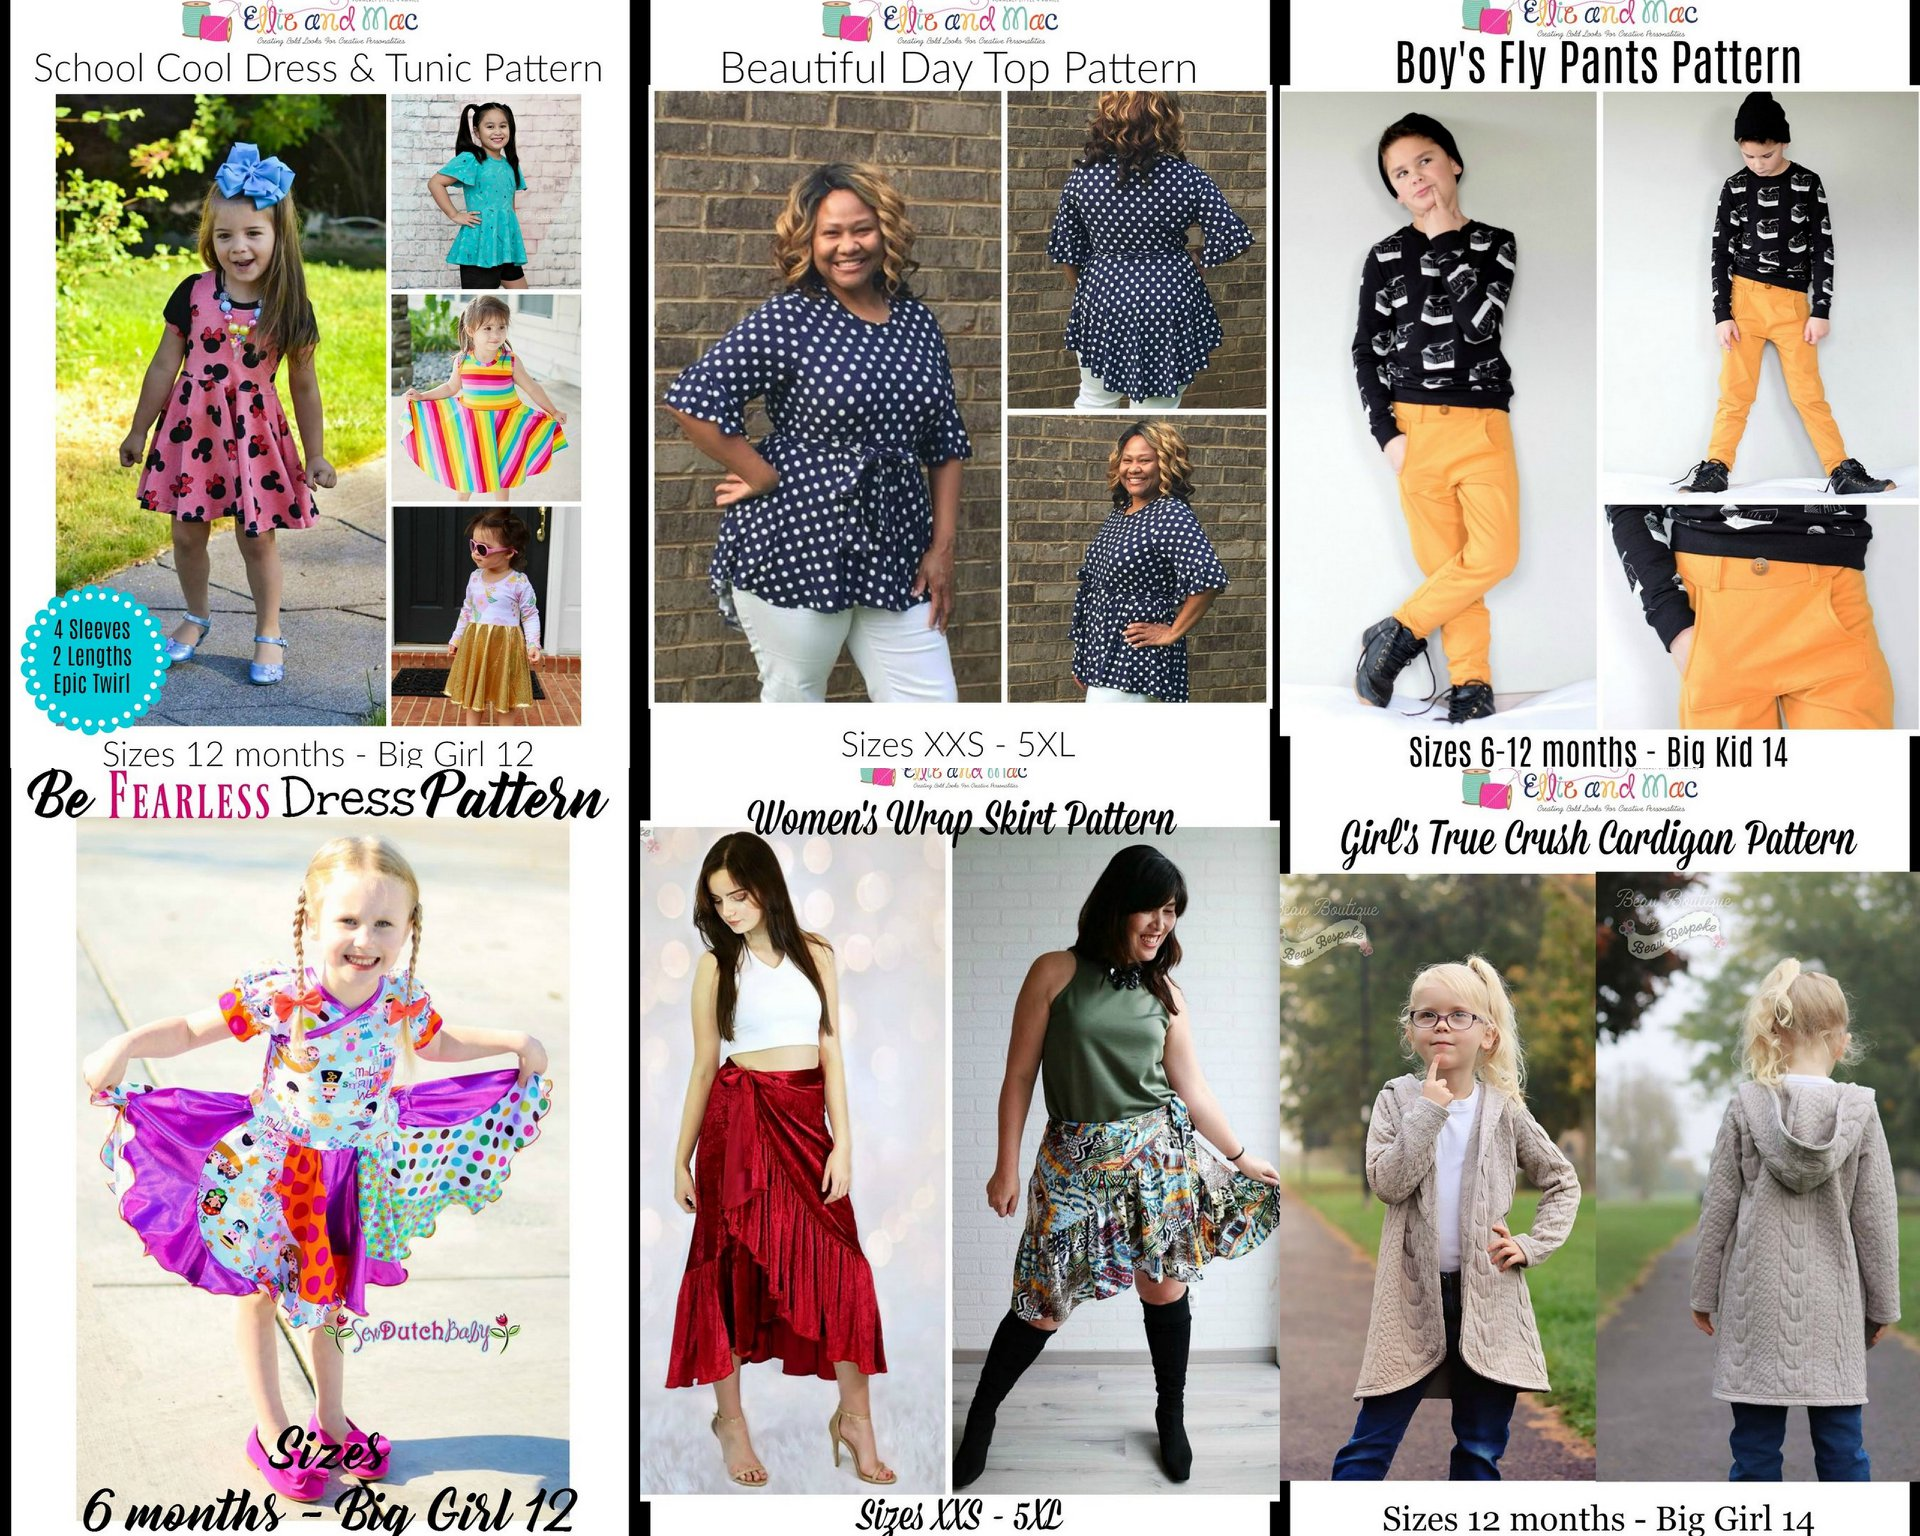 Wacky Wednesday $1 Sewing Patterns for Women, Girls and Boys September 26th